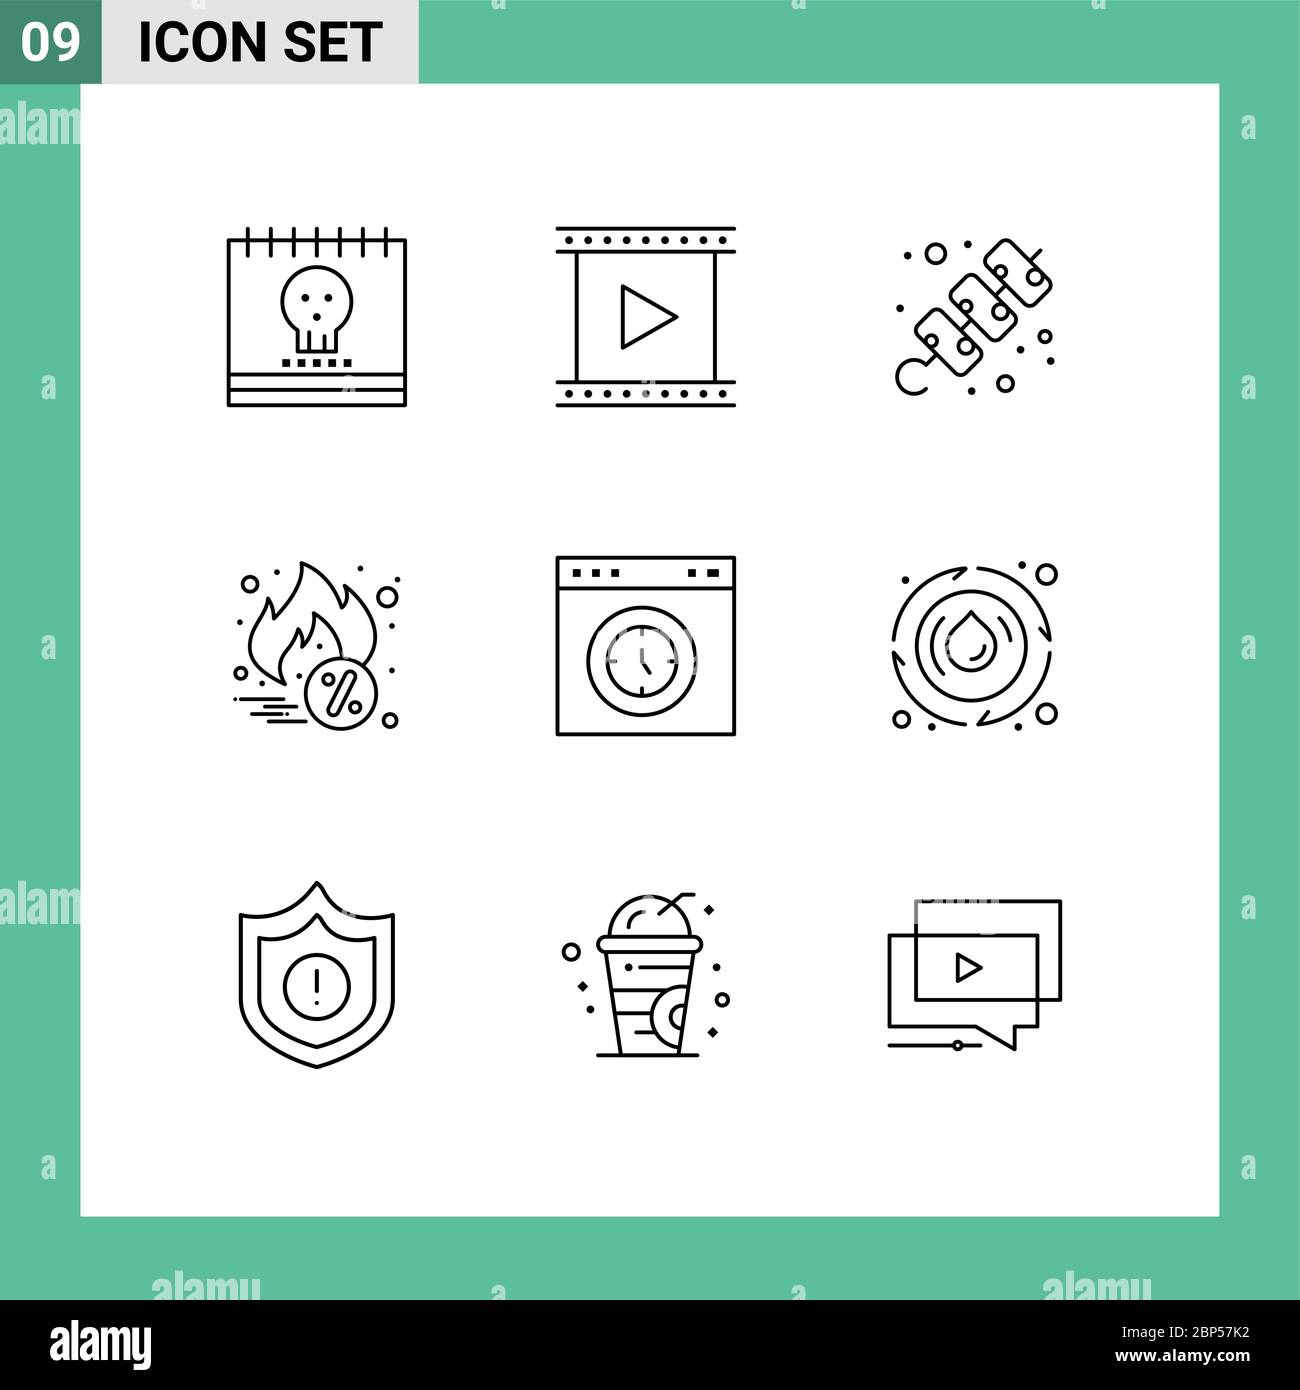 Group Of 9 Outlines Signs And Symbols For Browser Cyber Monday Movie Hot Sale Meat Editable Vector Design Elements Stock Vector Image Art Alamy